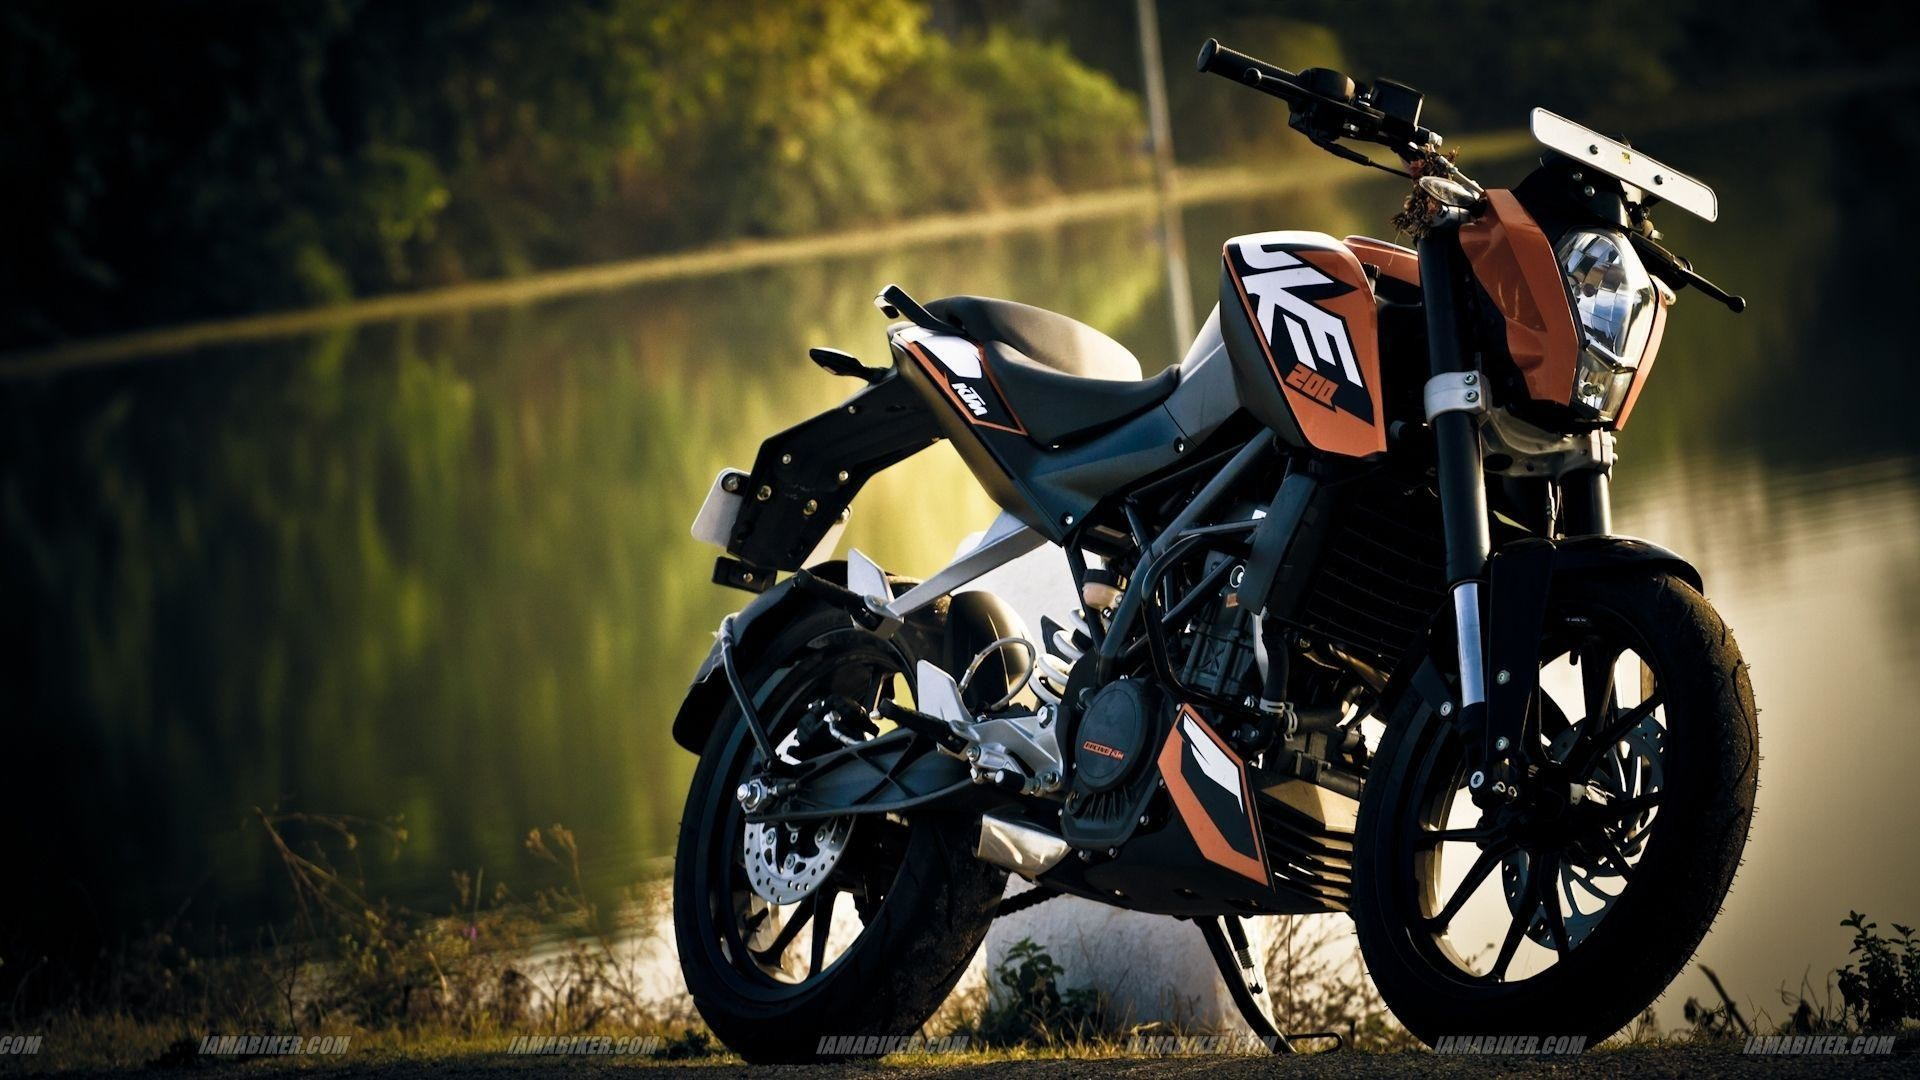 Res: 1920x1080, KTM Duke 200 HD wallpapers